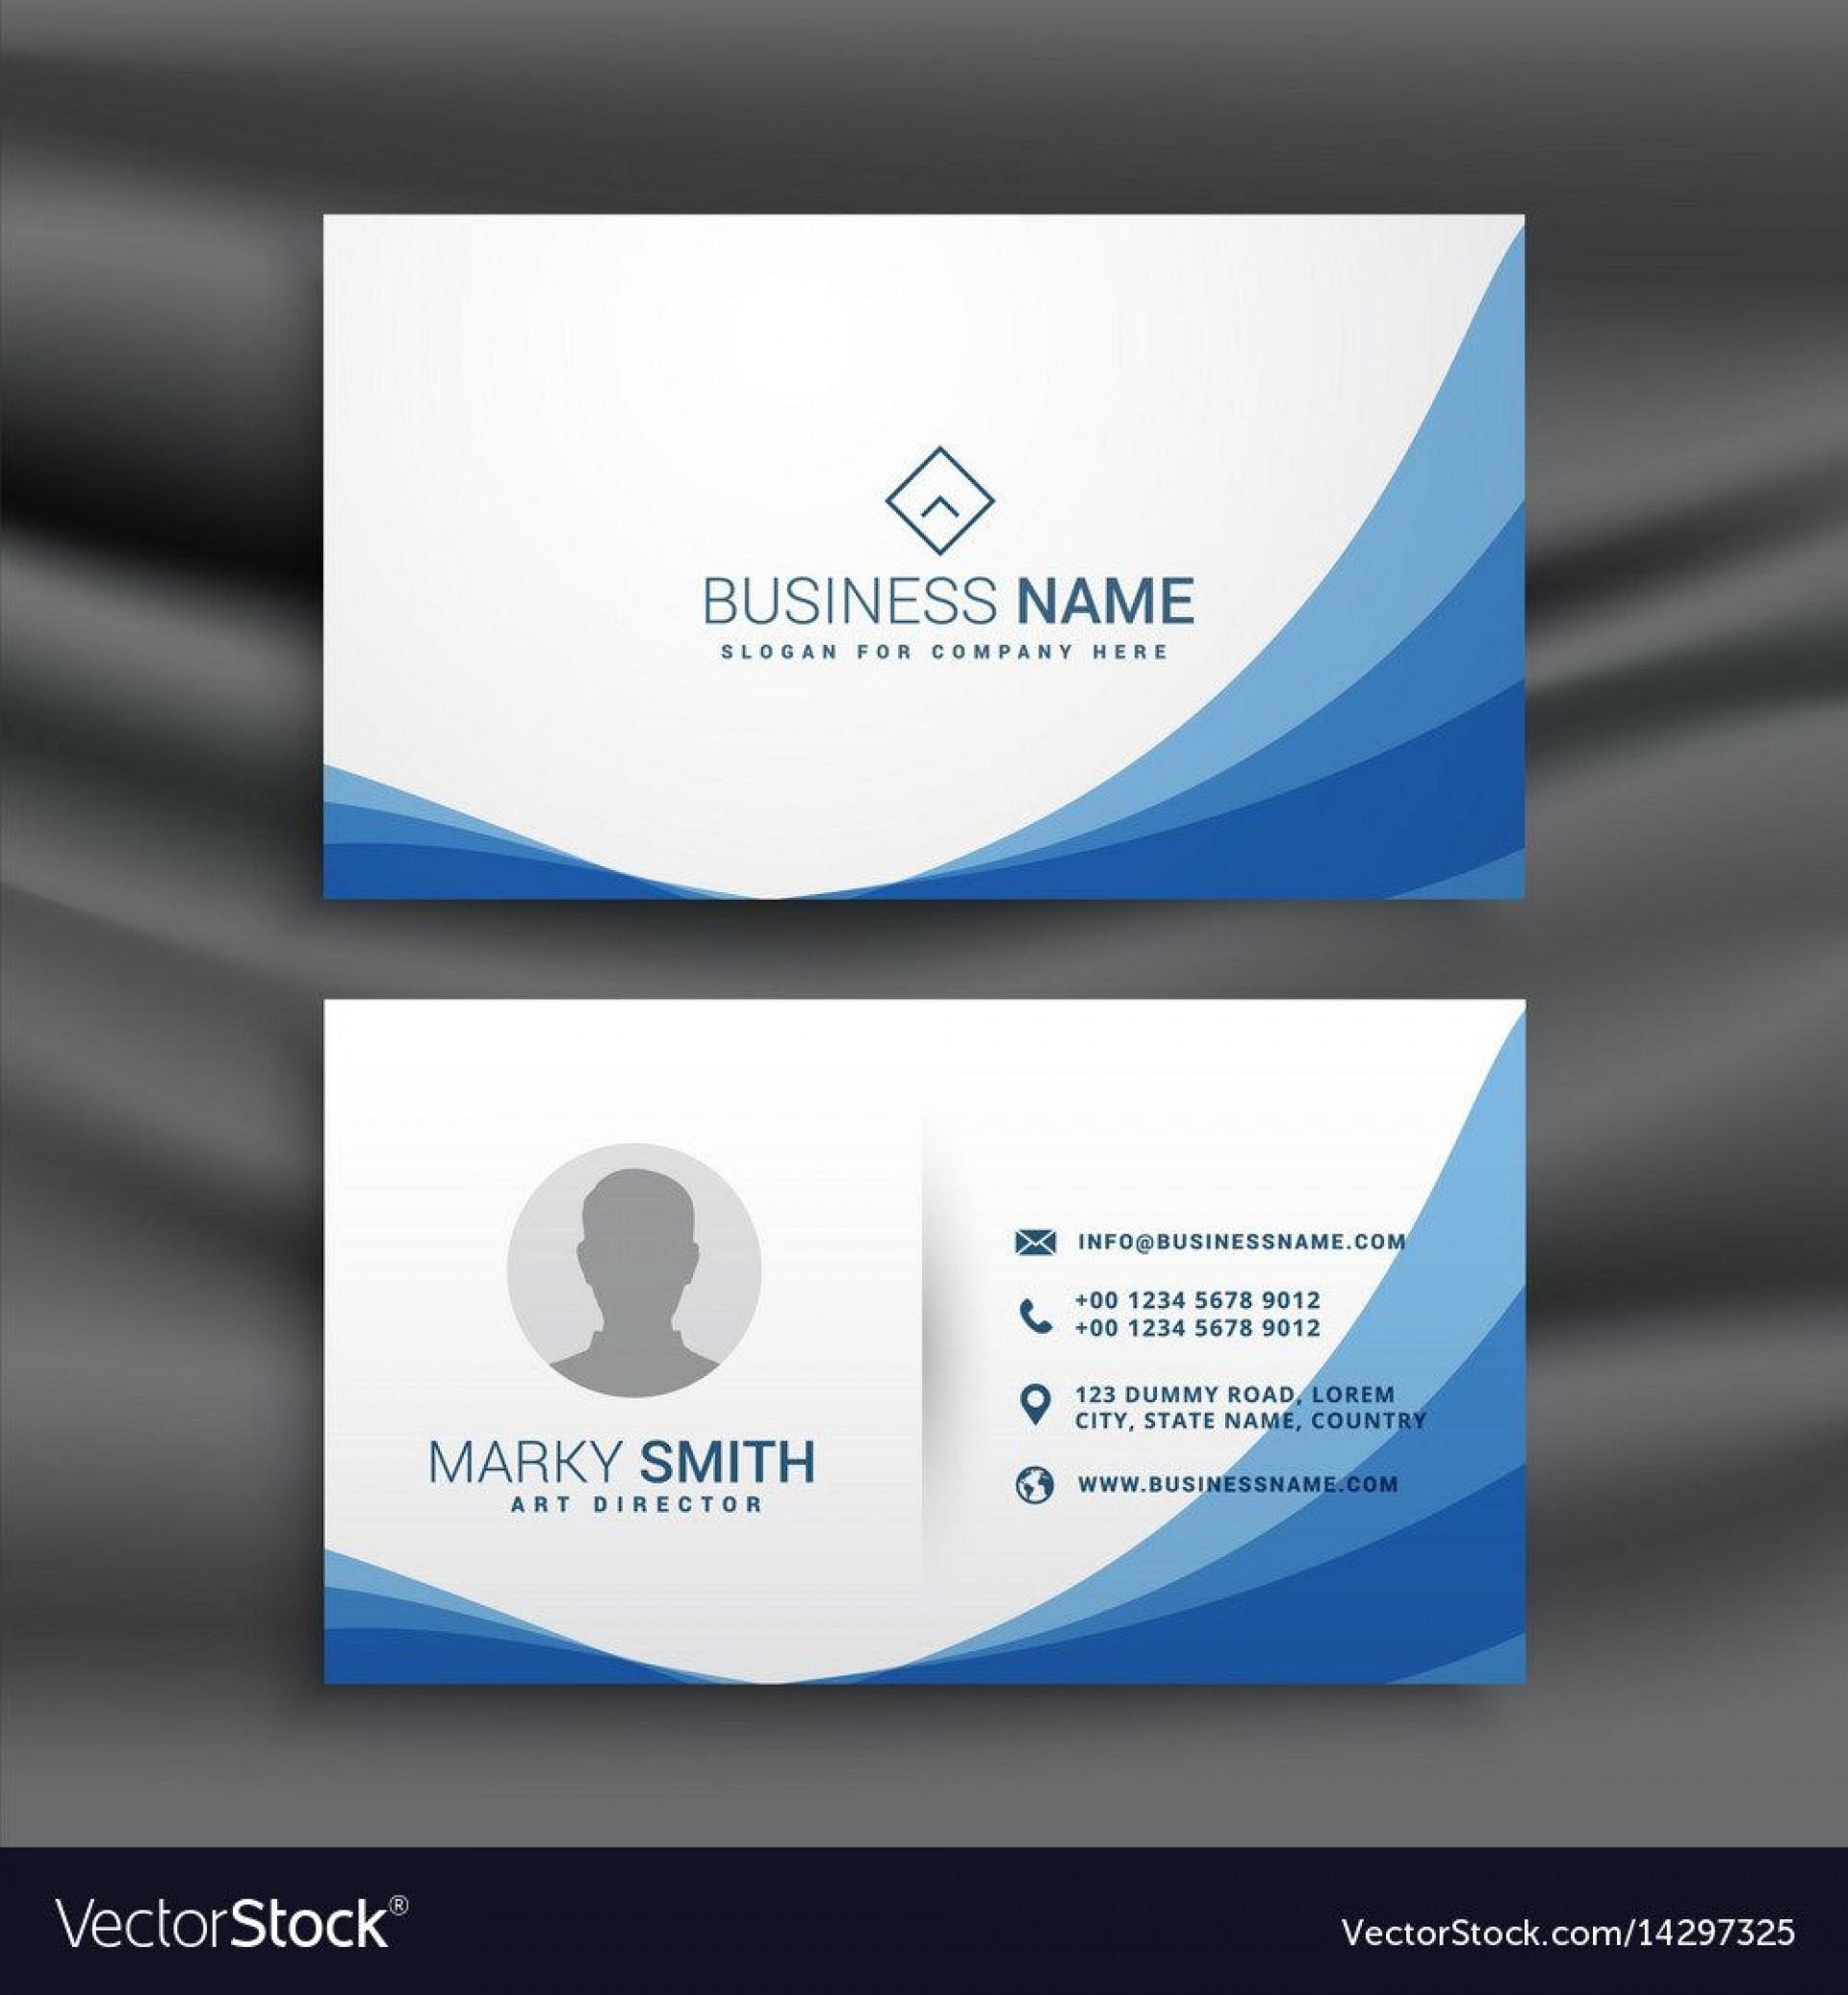 002 Fascinating Simple Visiting Card Design High Definition  Busines Idea Psd File Free Download1920